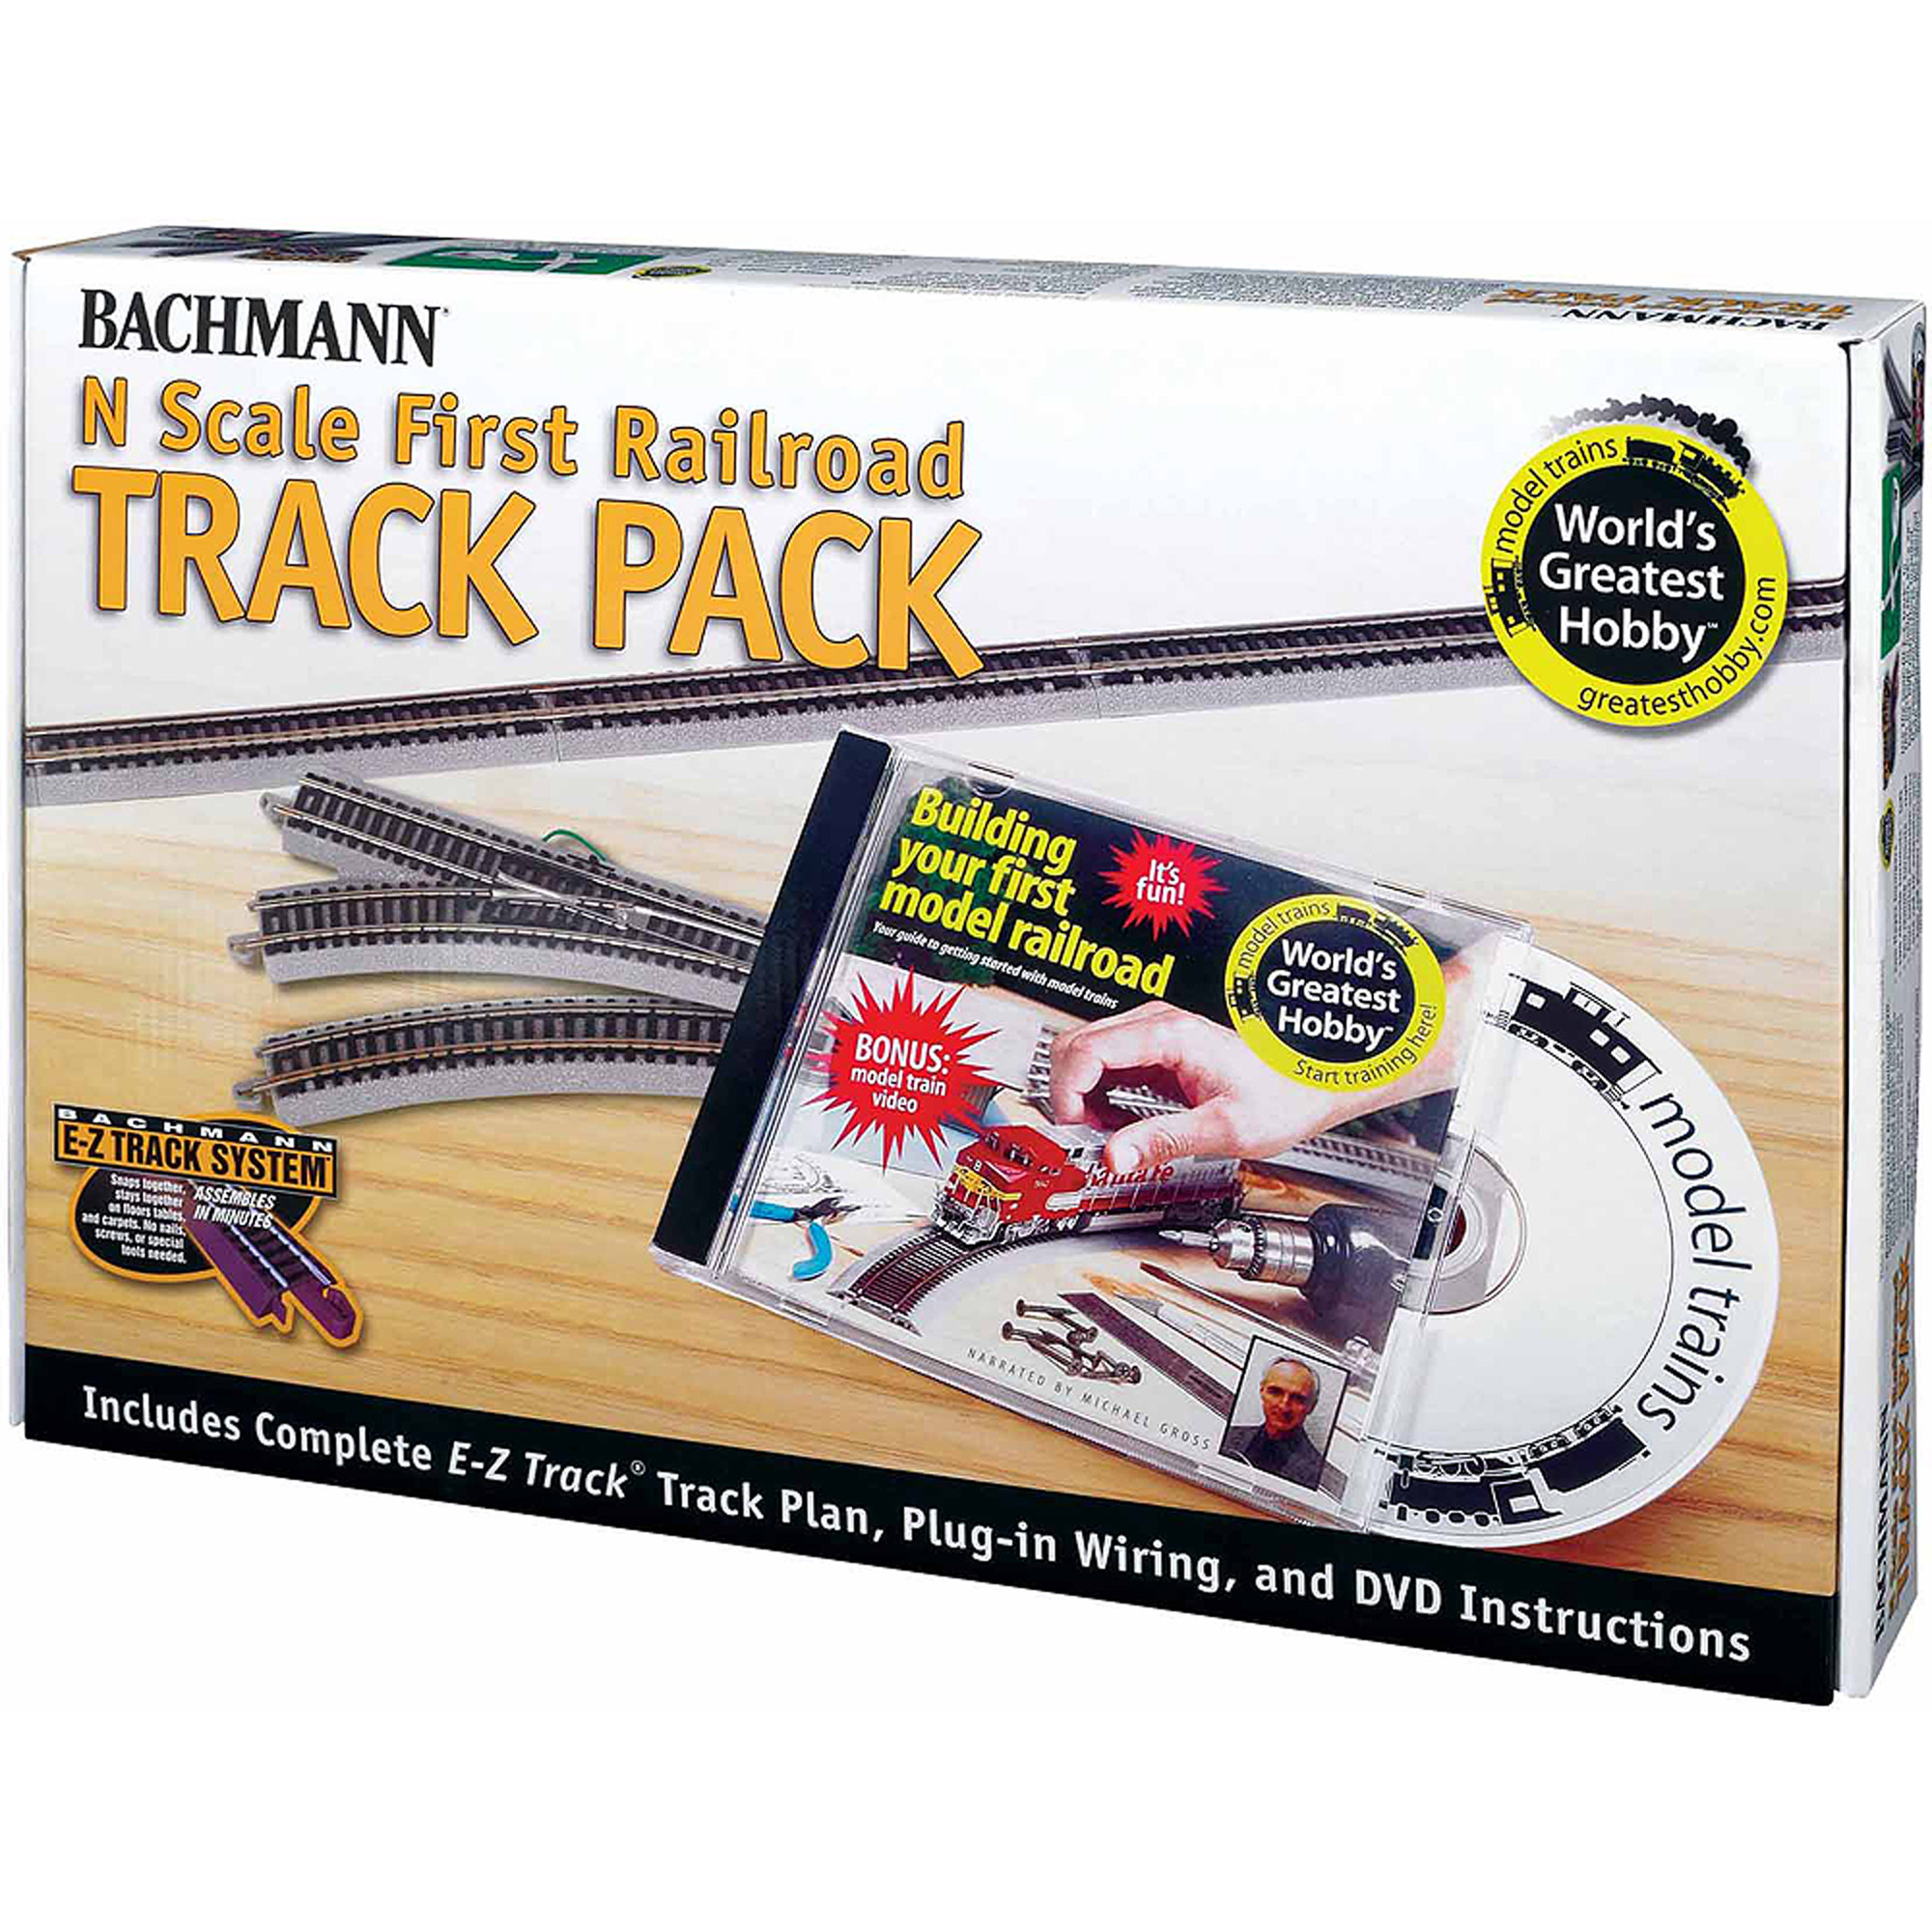 Bachmann Trains World's Greatest Hobby Track Pack, N Scale